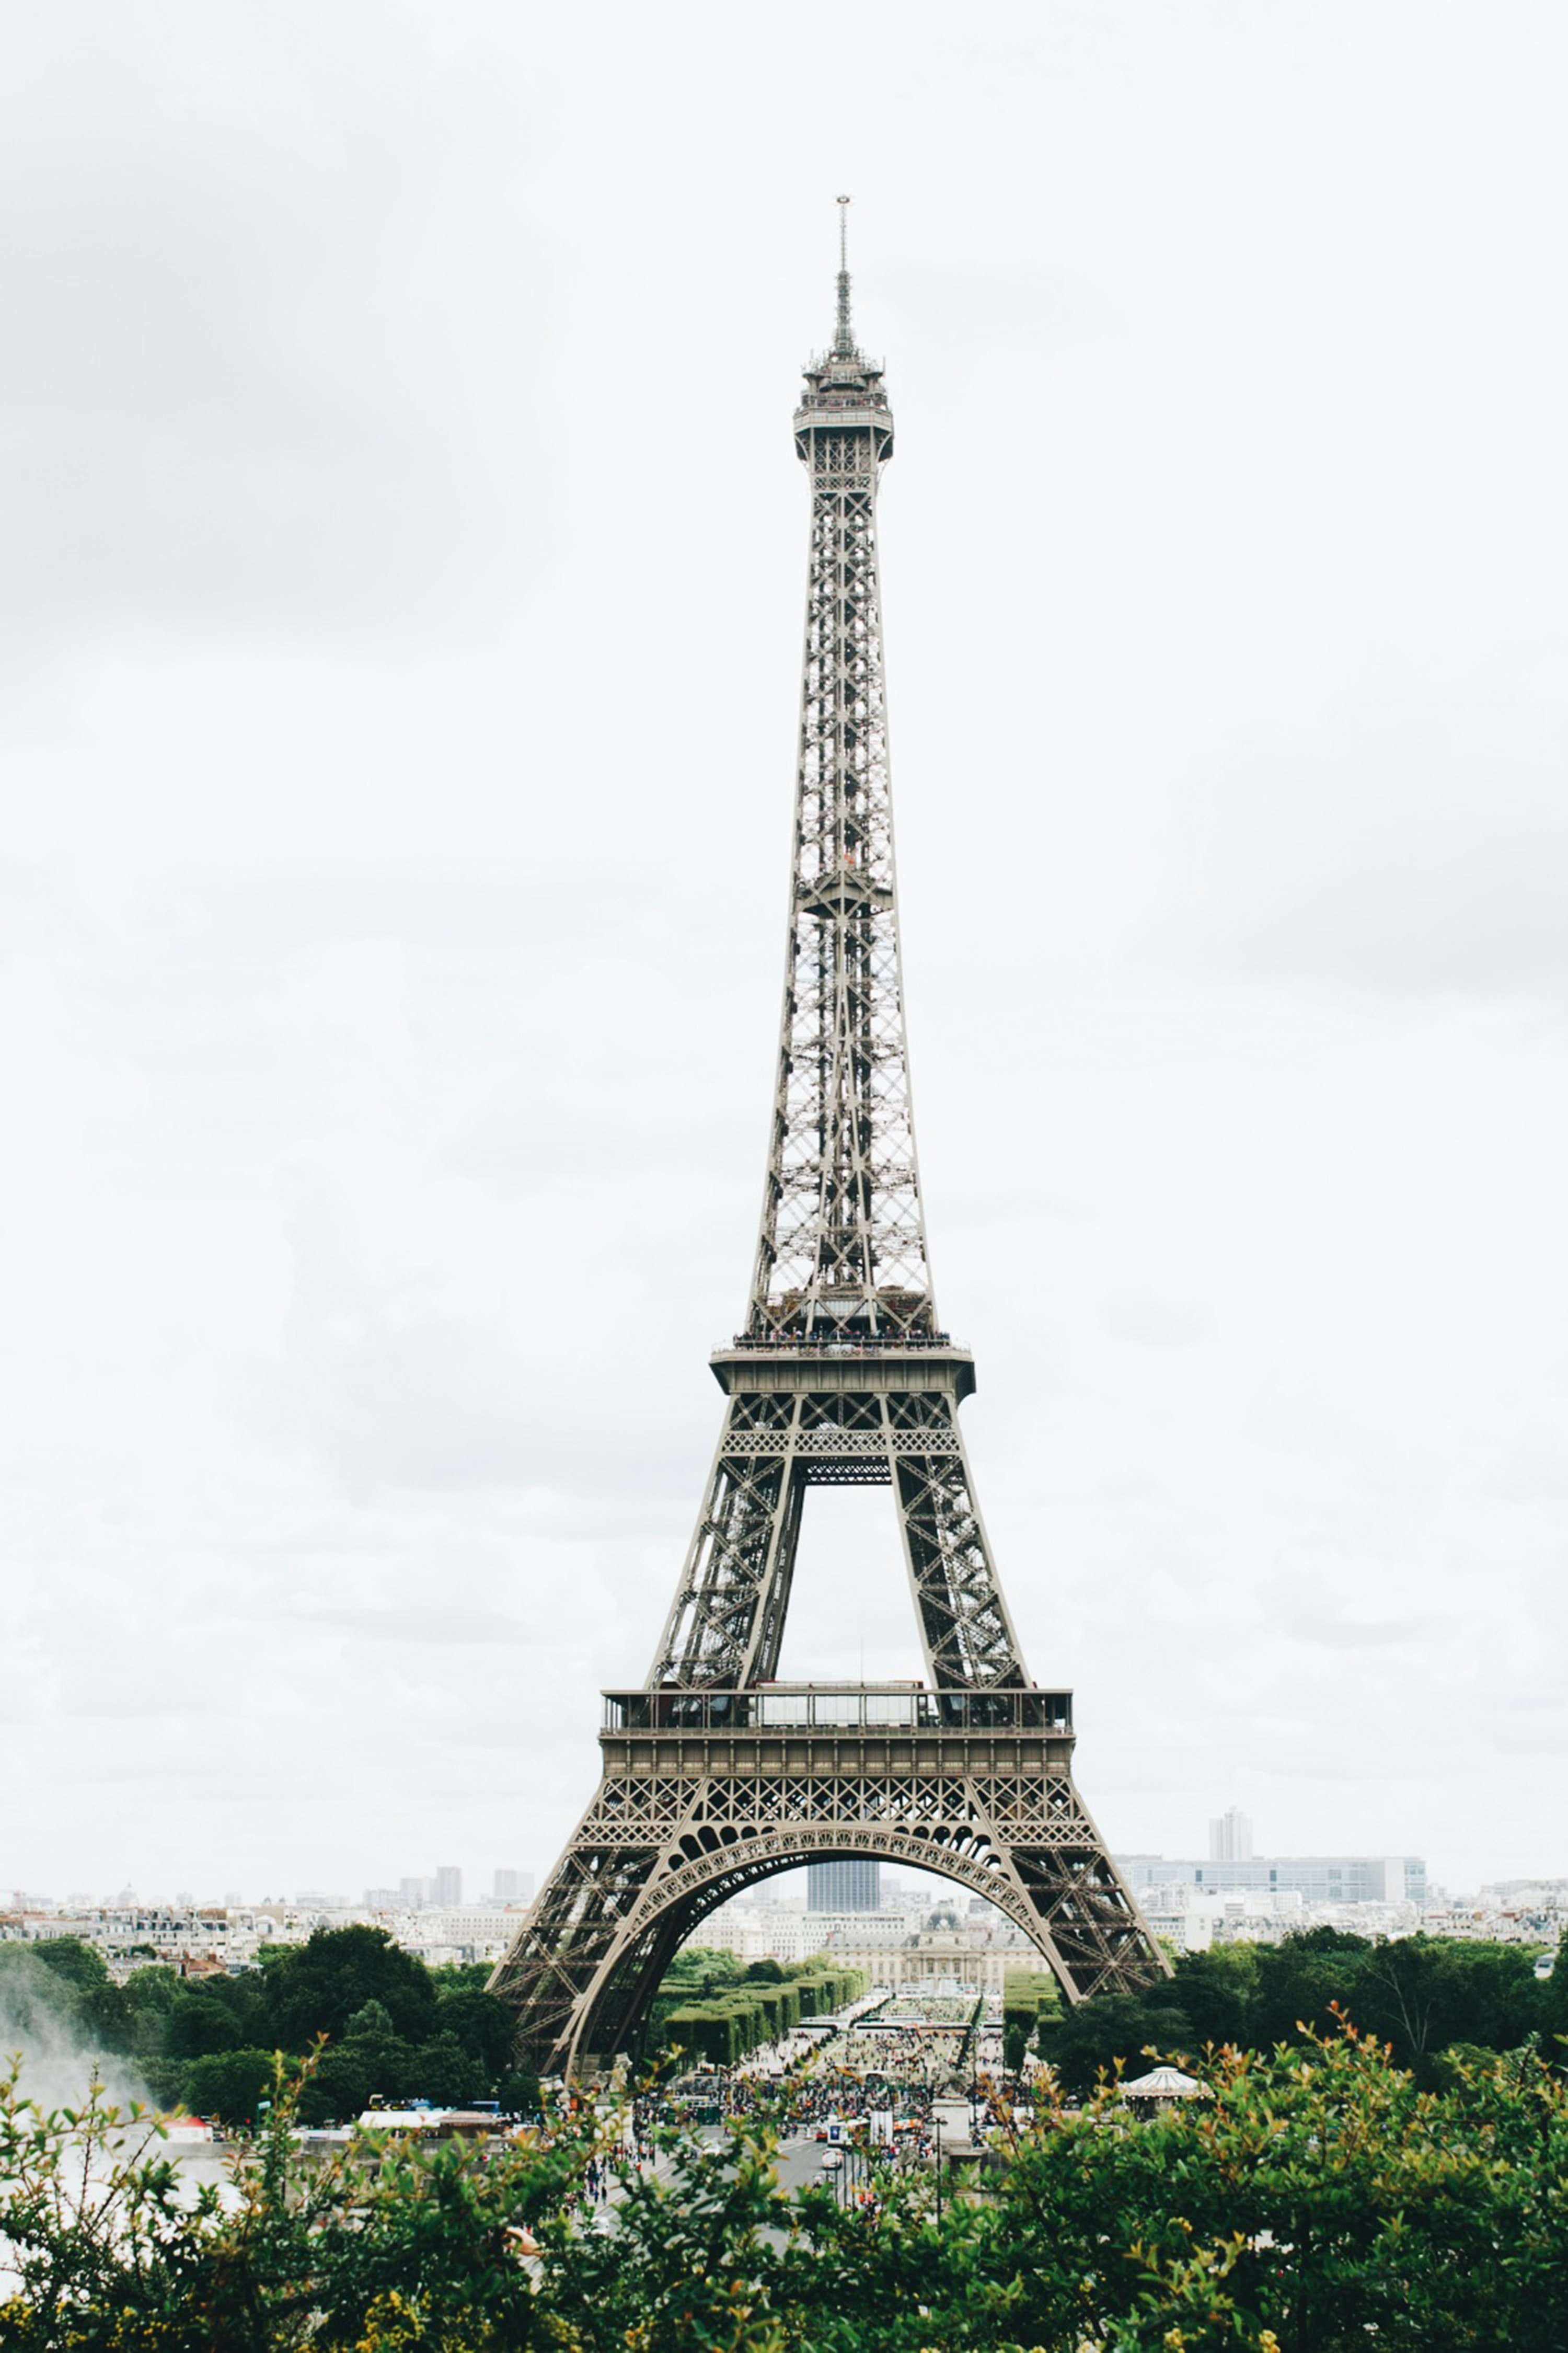 The eiffel tower on a cloudy day in Paris